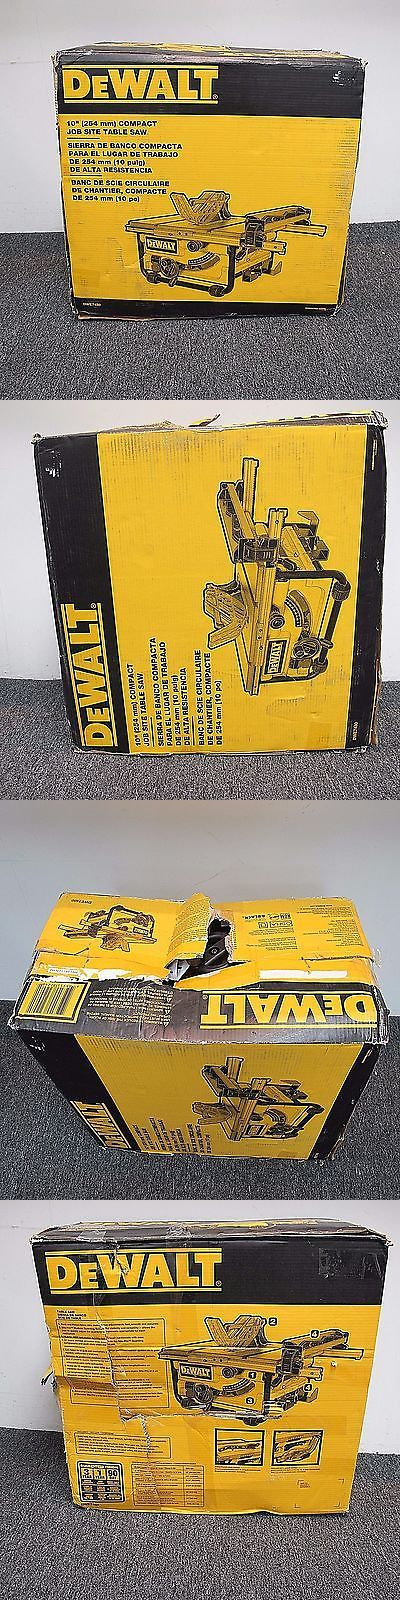 Table Saws 122835: Dewalt Dwe7480 10 Compact Job Site Table Saw Pa Philadelphia Local Pick Up Only -> BUY IT NOW ONLY: $224.99 on eBay!